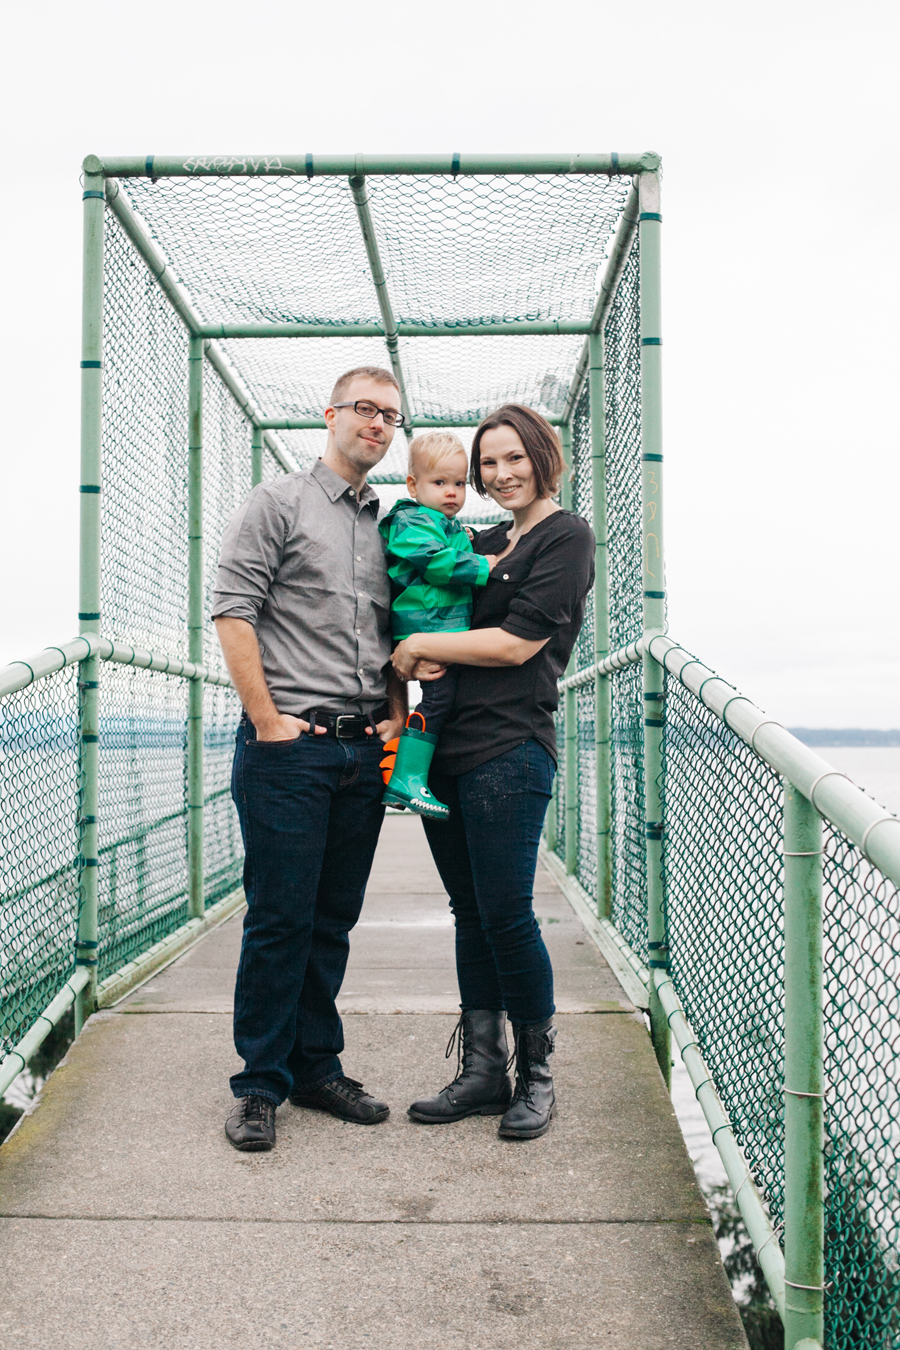 009-seattle-family-photographer-carkeek-park-katheryn-moran-photography.jpg